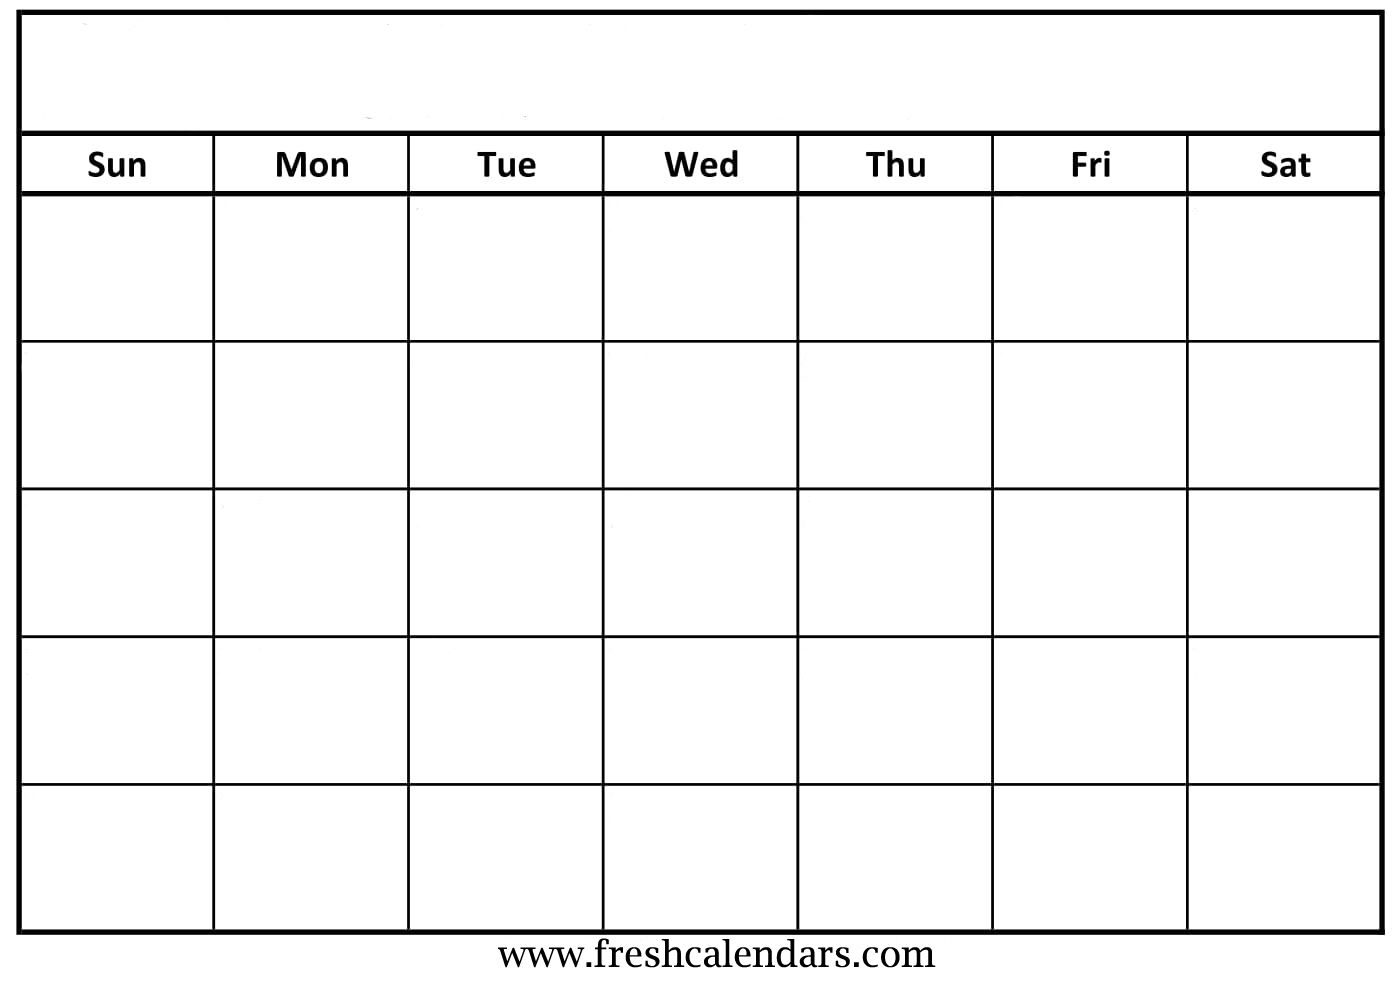 Free Printable Calendar Templates Brochure October 2018 2017 Word with regard to Free Printable Blank Calendars To Fill In